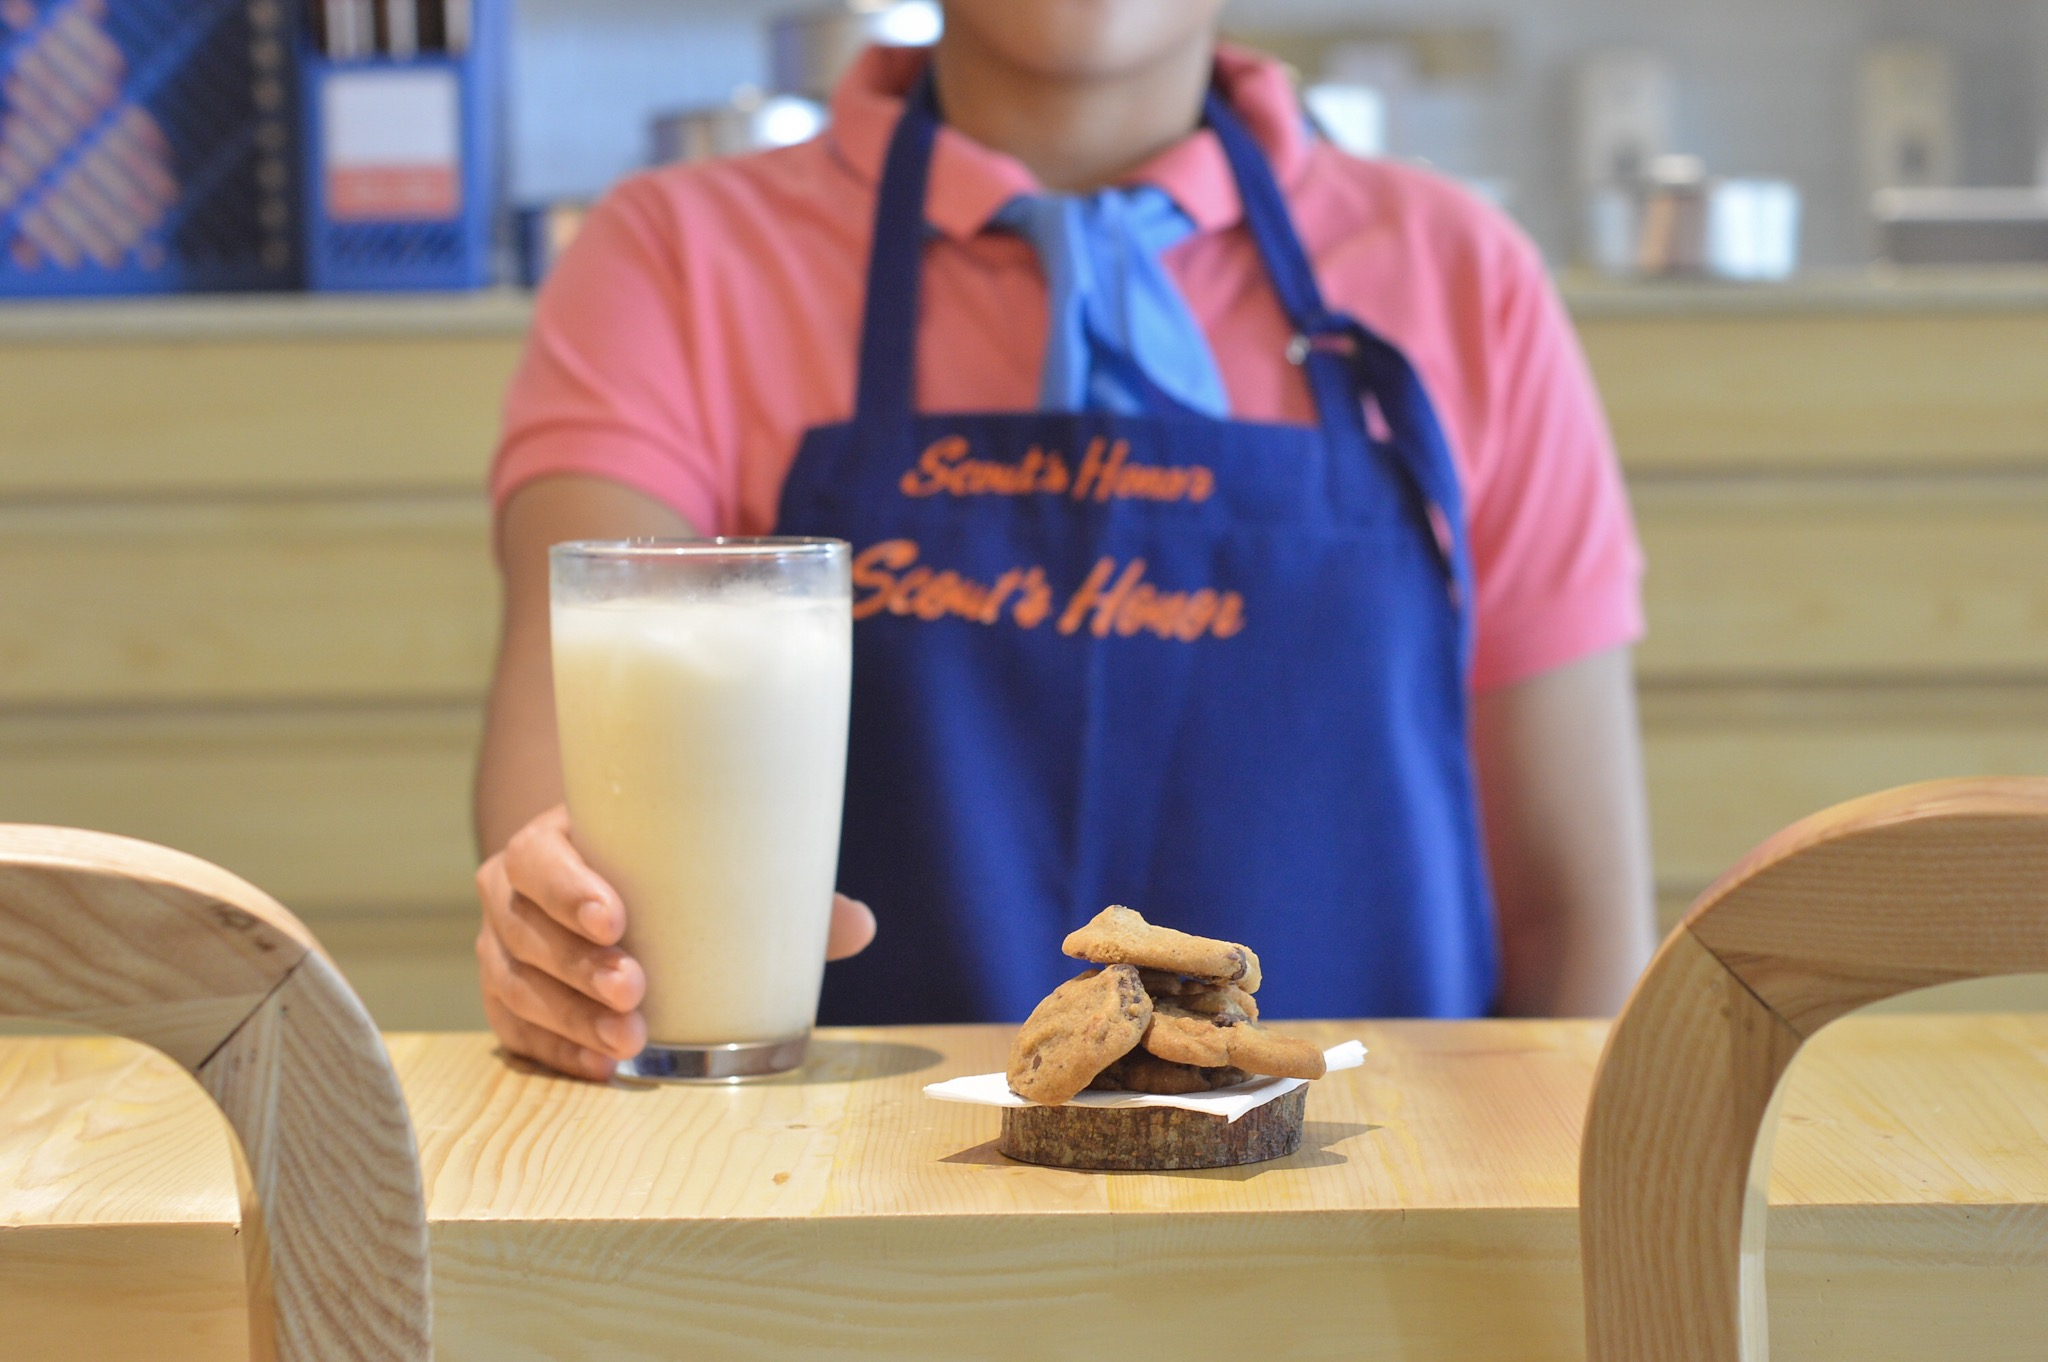 Dunk a Scout's Honor cookie in a glass of Horlick's milk